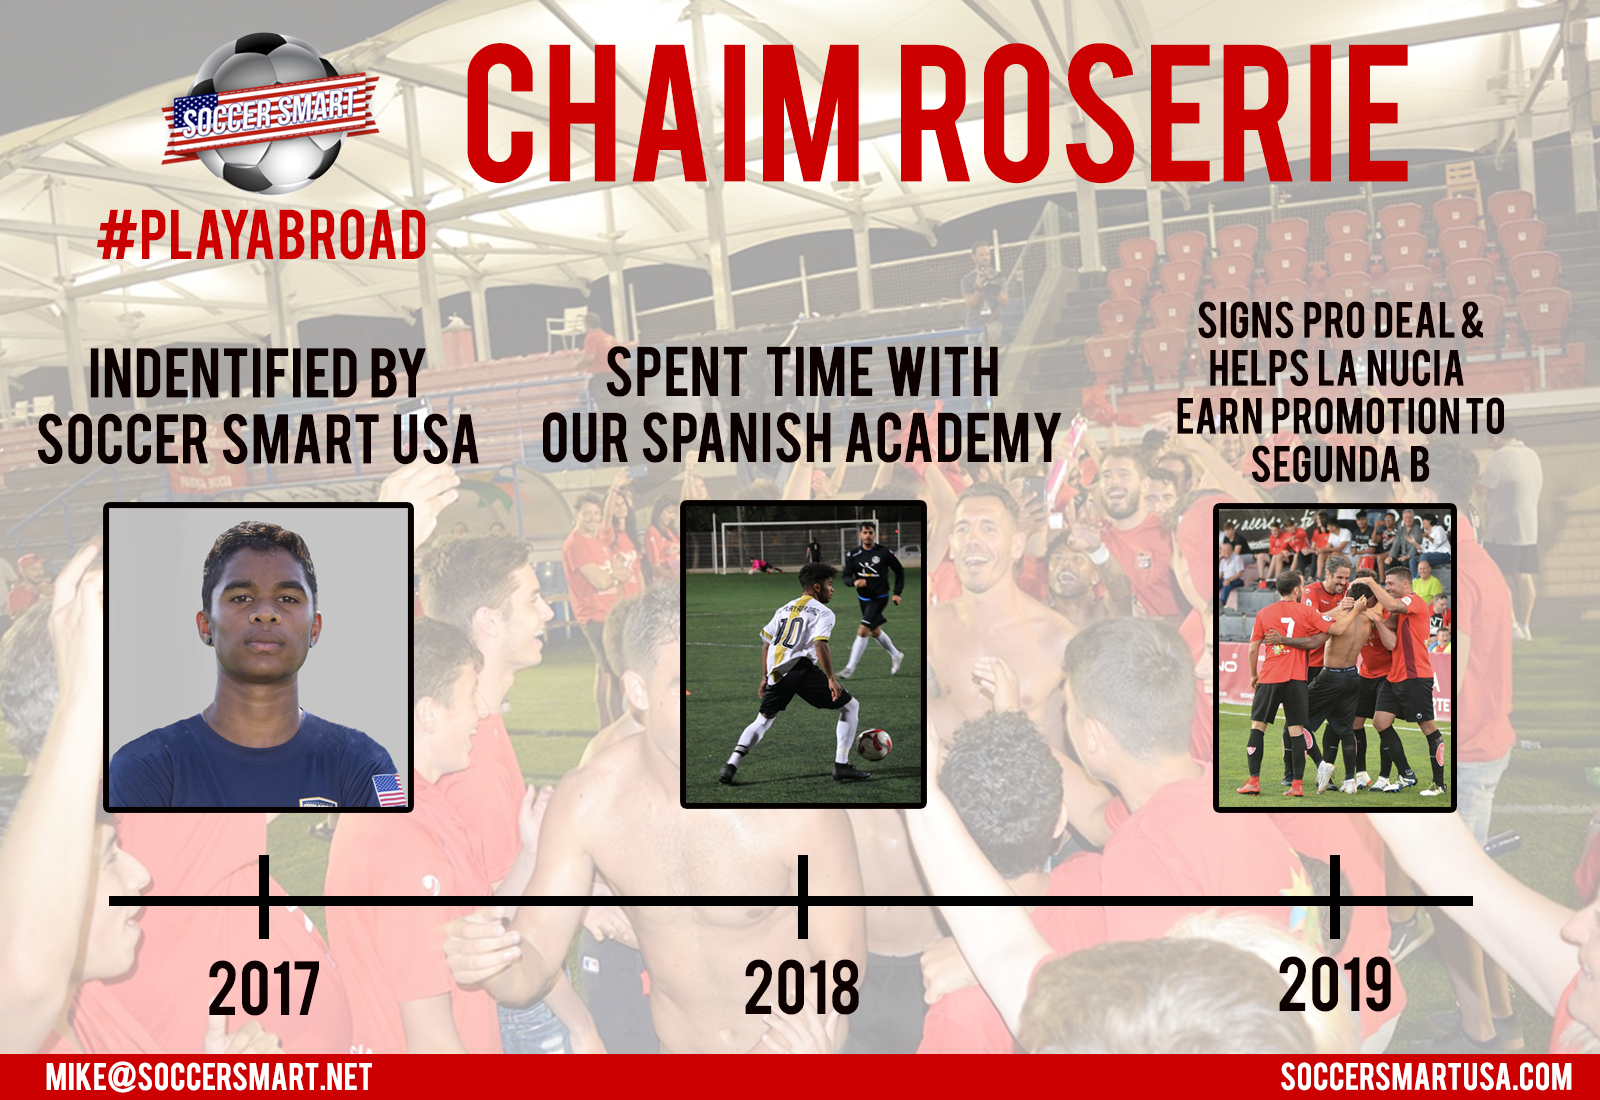 The story of Chaim Roserie so far up until his international call-up